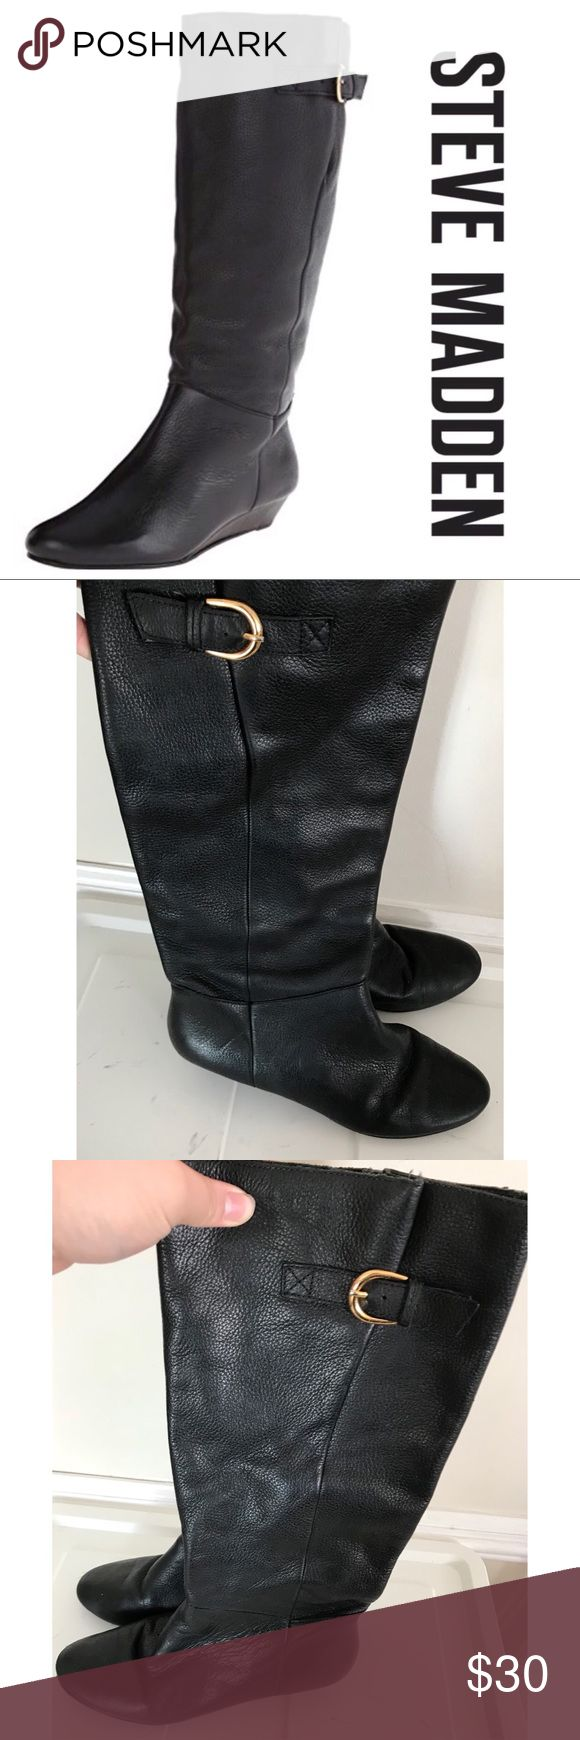 Steve Madden Intyce Leather Boots Size 6.5 Steve Madden Intyce Leather Boots Size 6.5 have been gently used and is in good condition! Sexy and chic, these boots are perfect for the fall and winter seasons. Heels have slight wear and scratches which are pictured above. Size 6.5 Steve Madden Shoes Over the Knee Boots